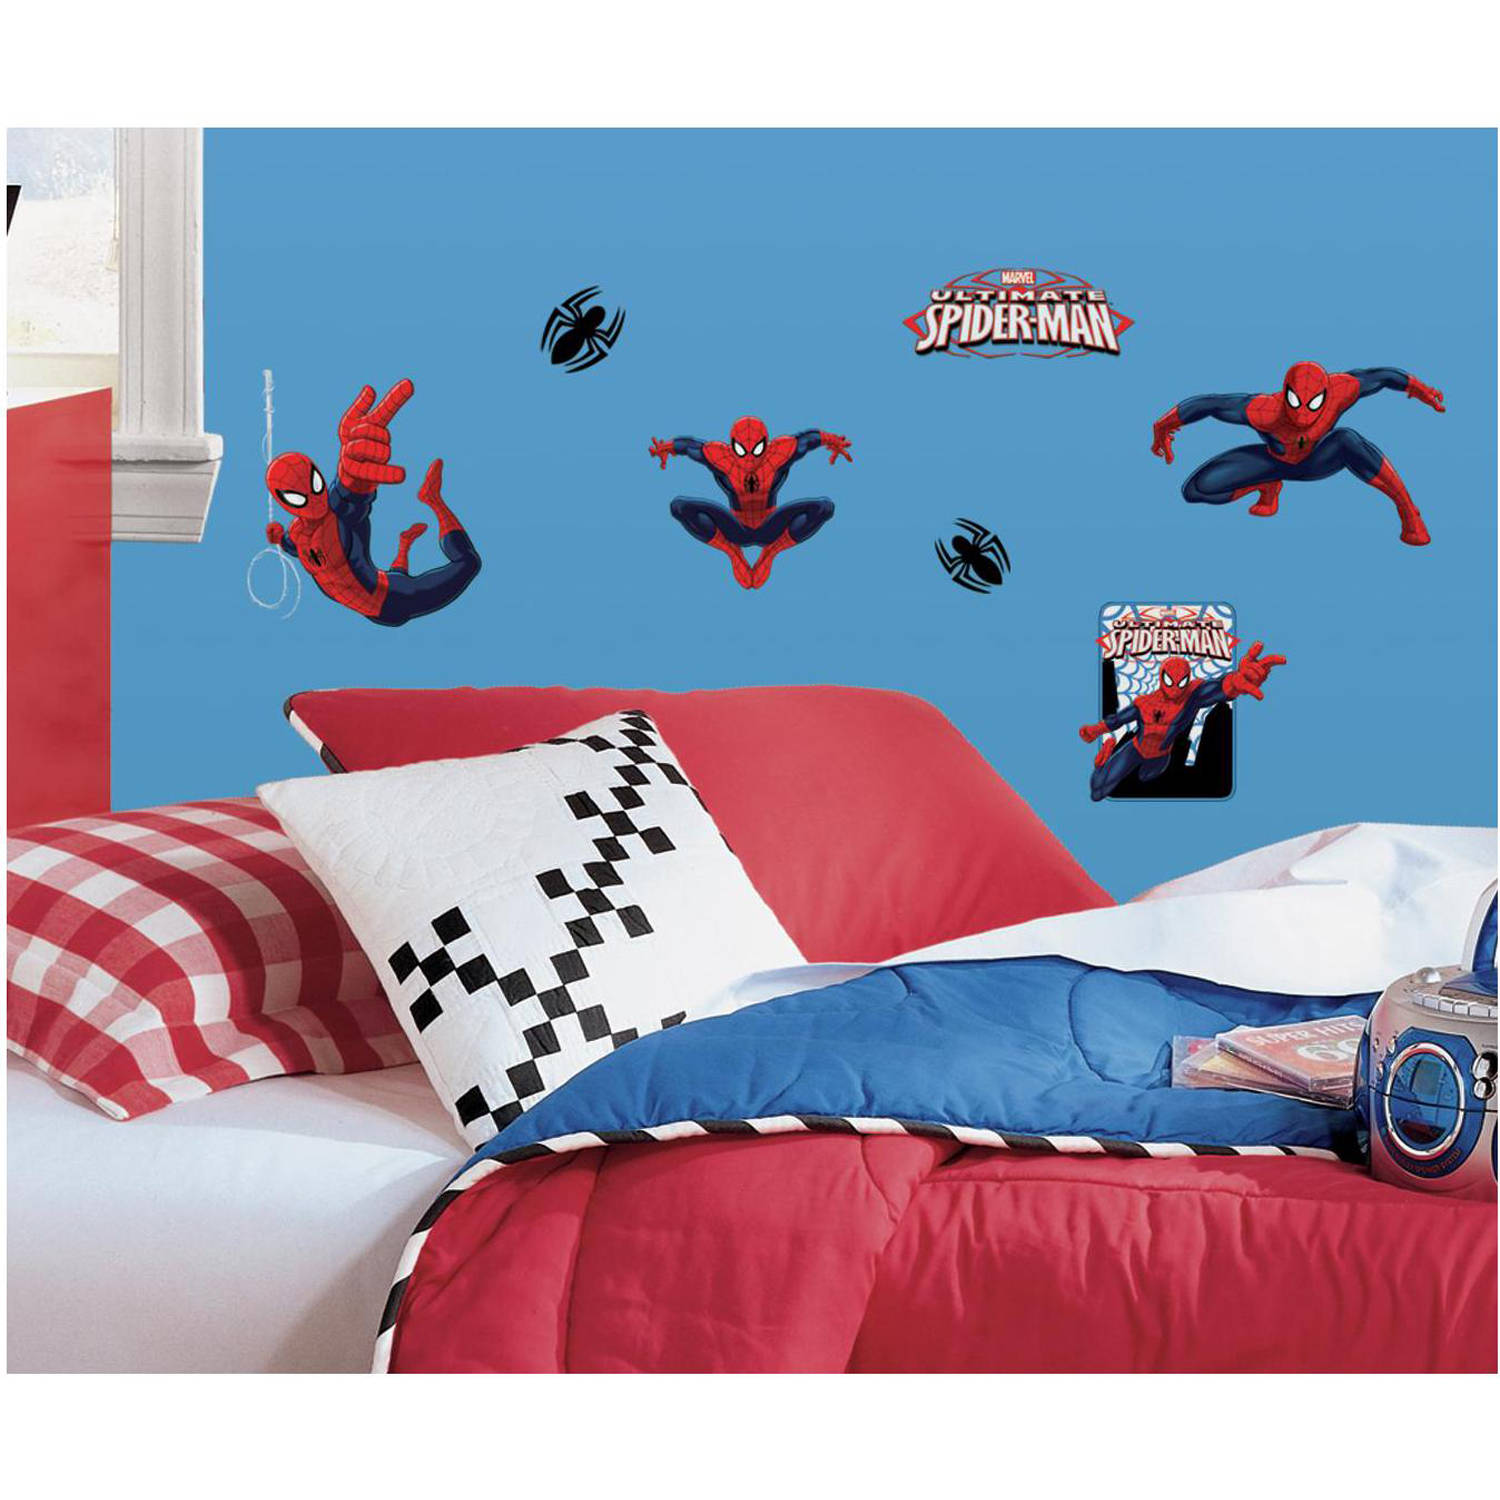 RoomMates Spider-Man Ultimate Spider-Man Peel and Stick Wall Decals